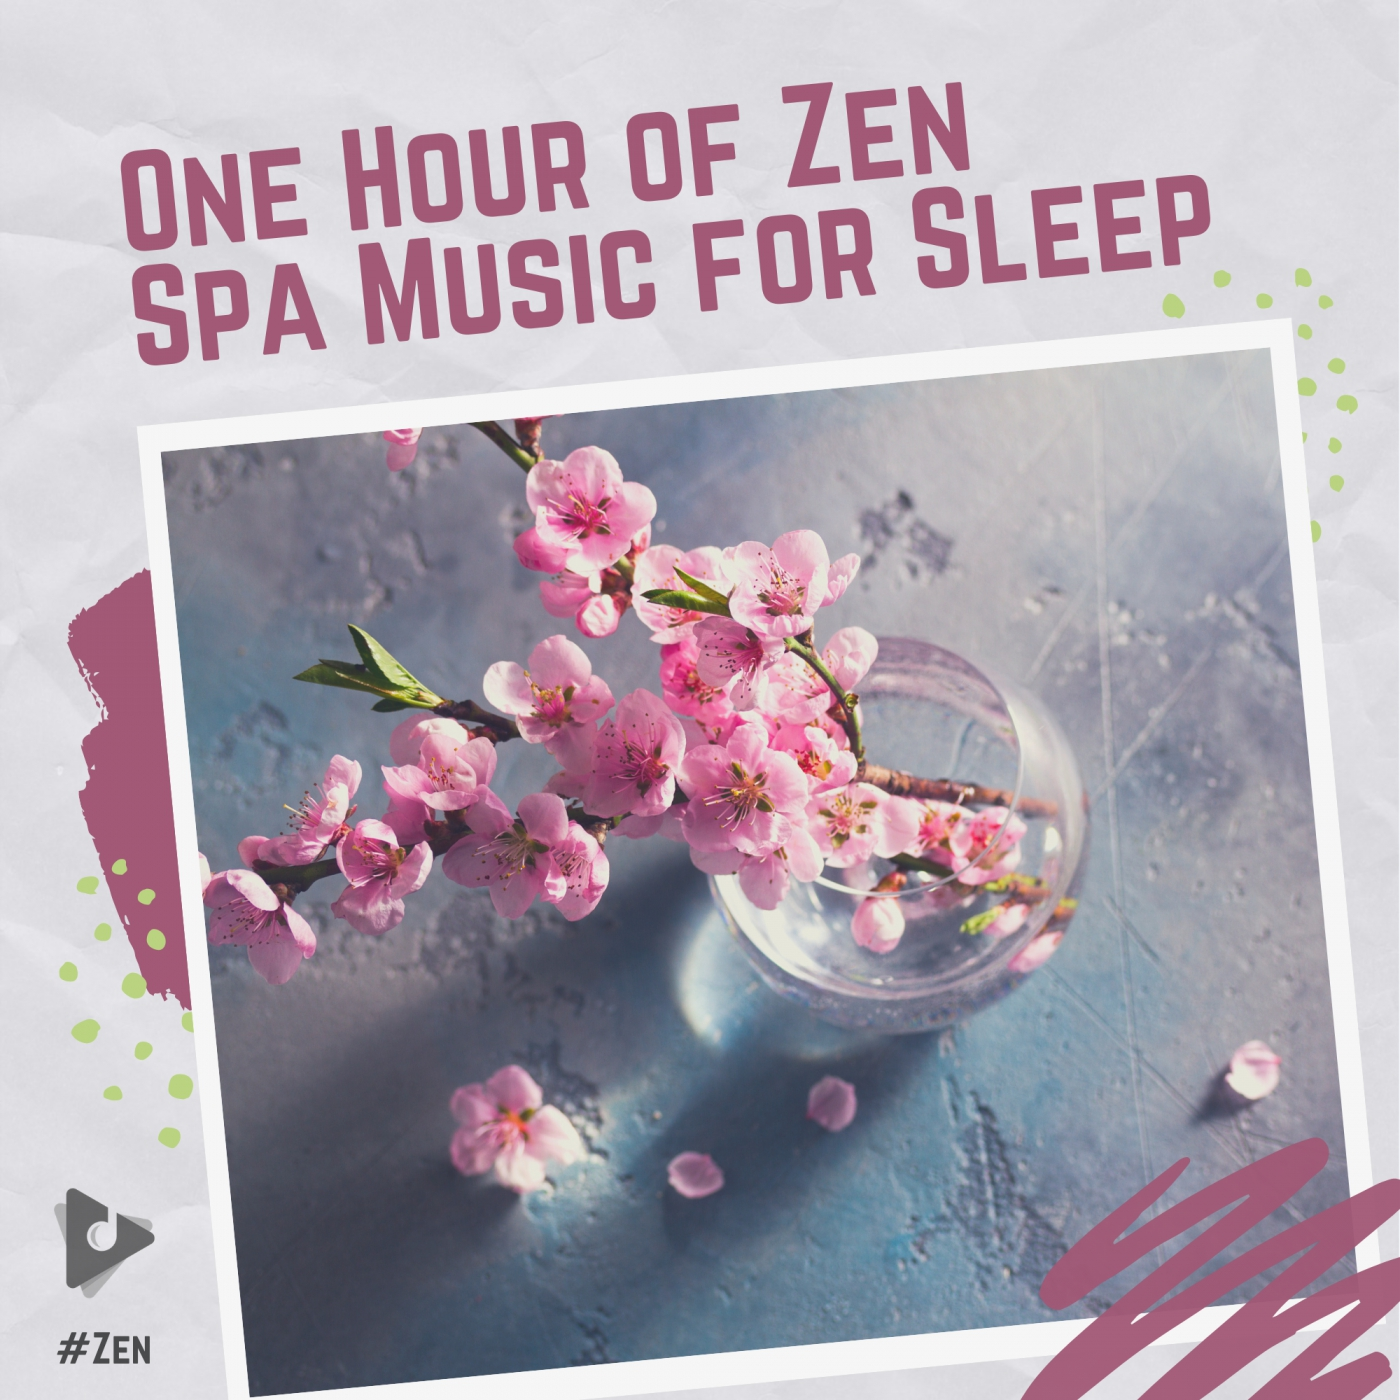 One Hour of Zen Spa Music for Sleep